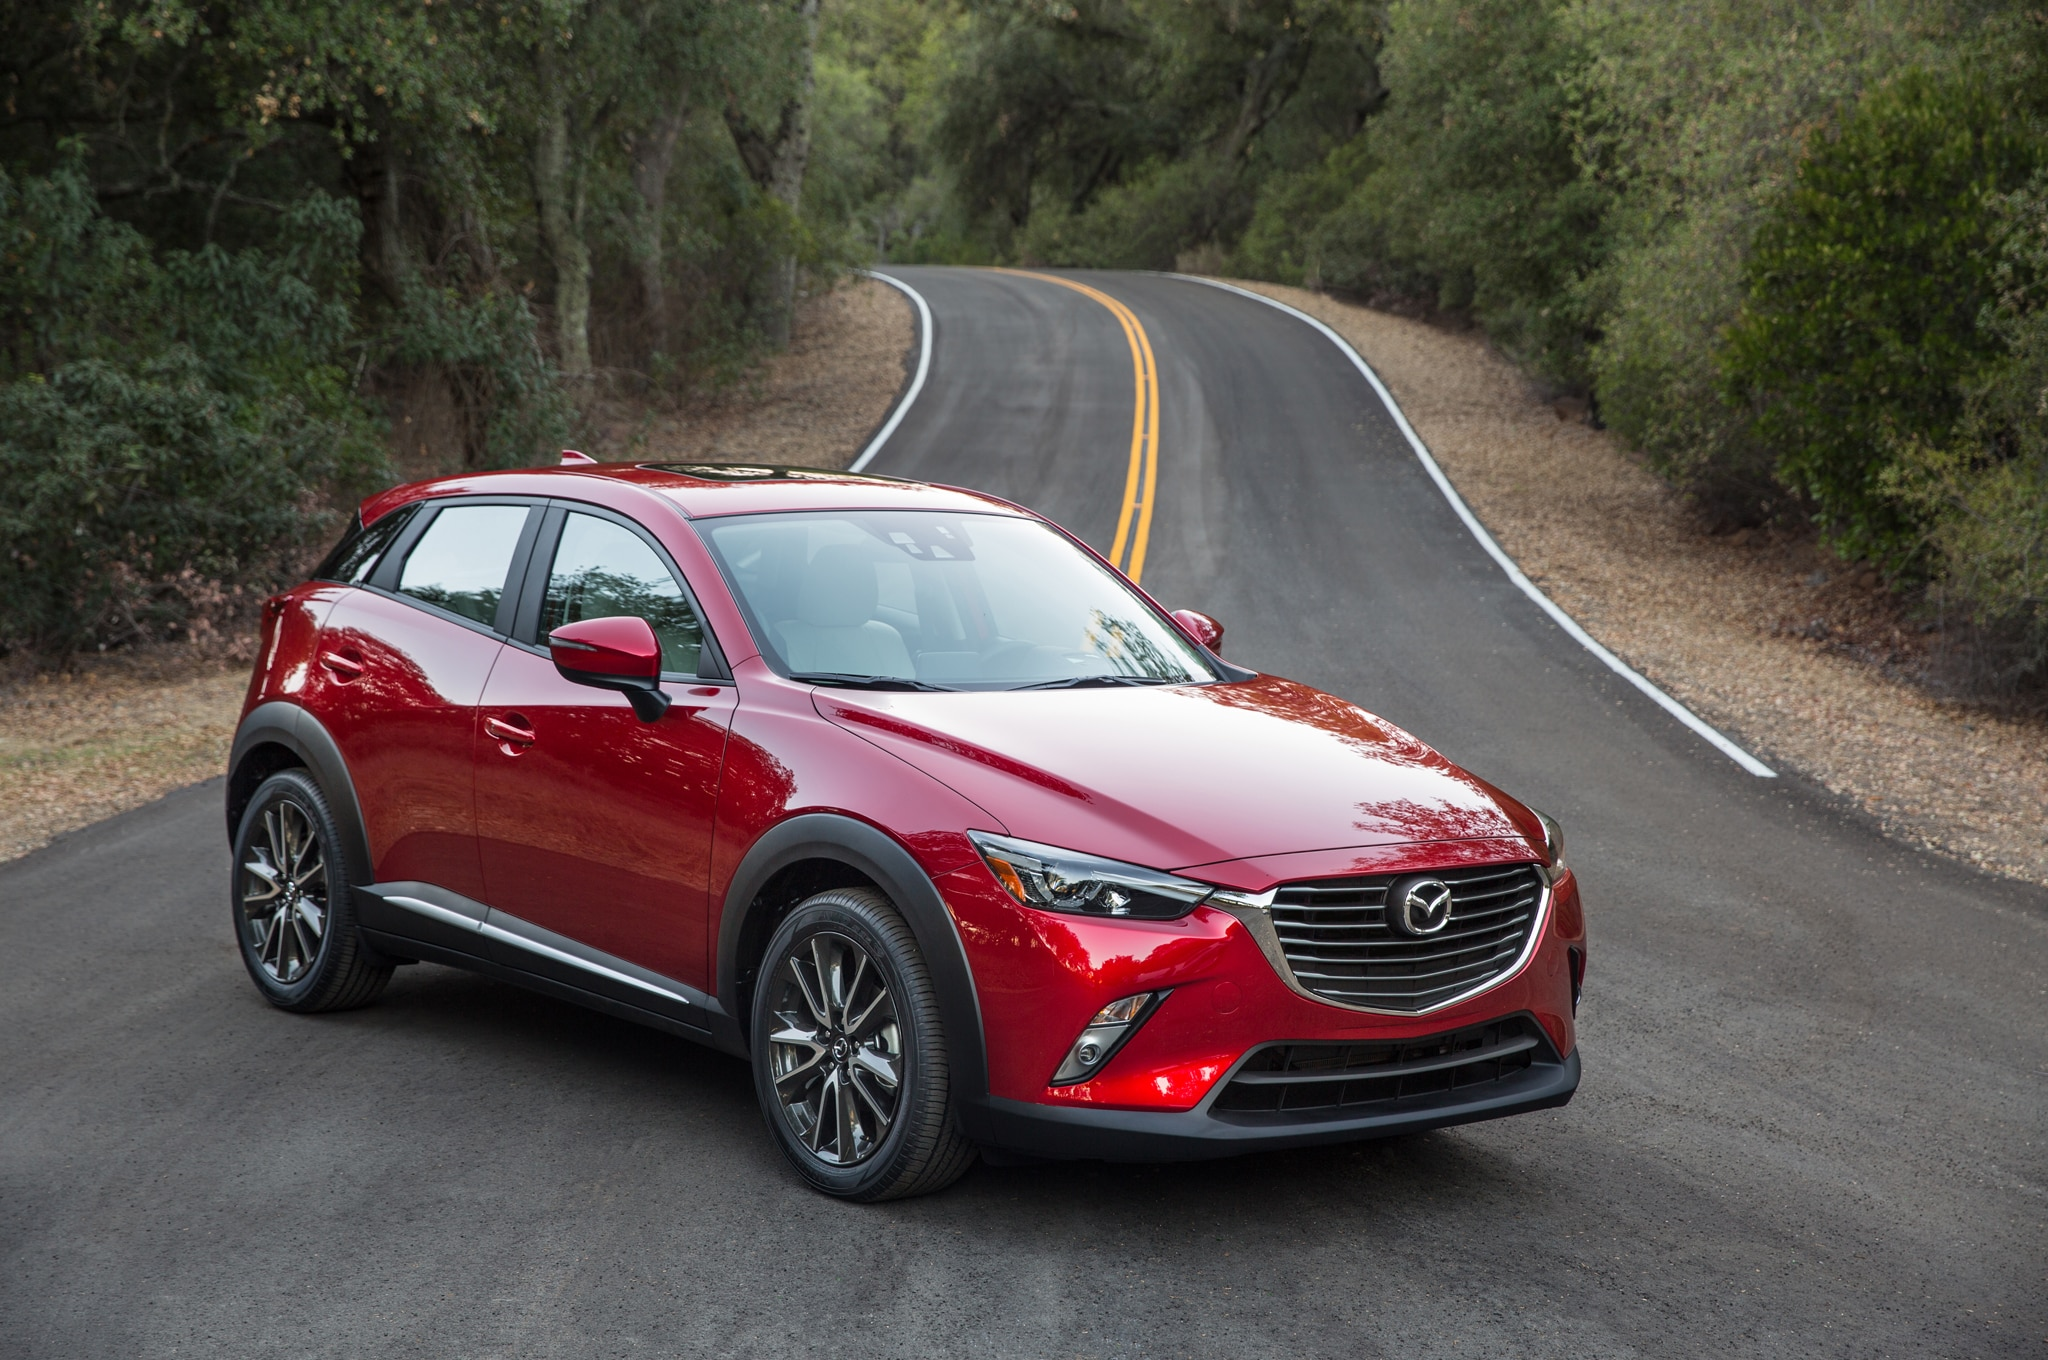 2016 mazda cx 3 fuel economy announced 5 advertisement to skip 1 5